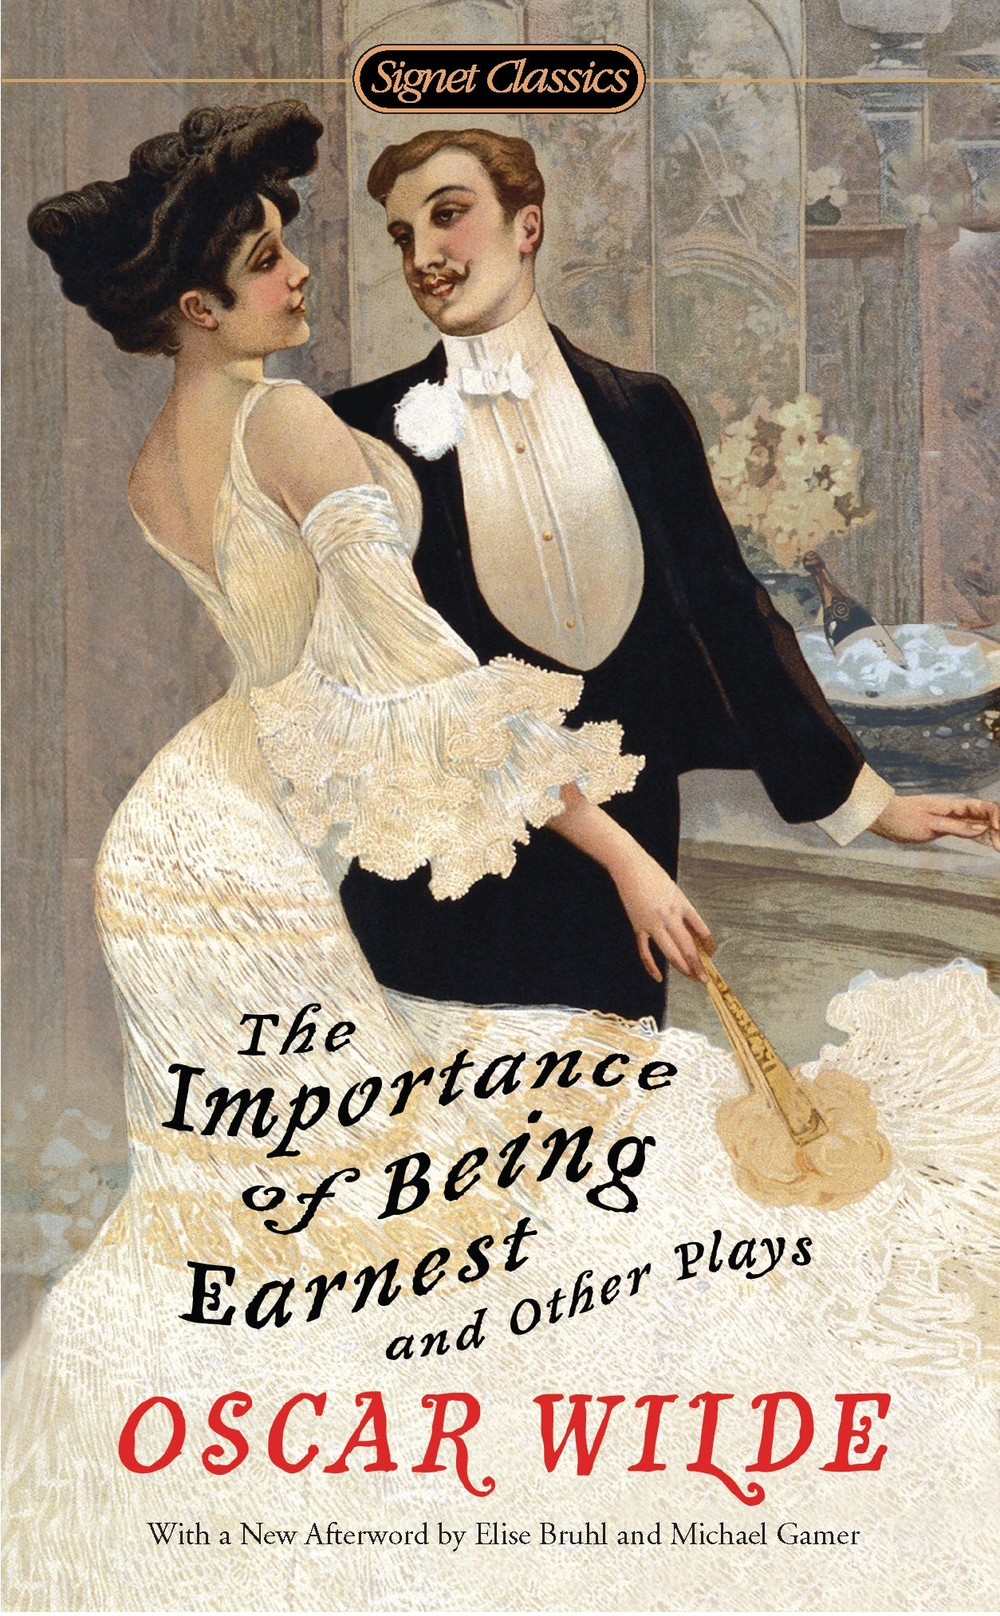 The Importance of Being Earnest by Oscar Wilde.jpg